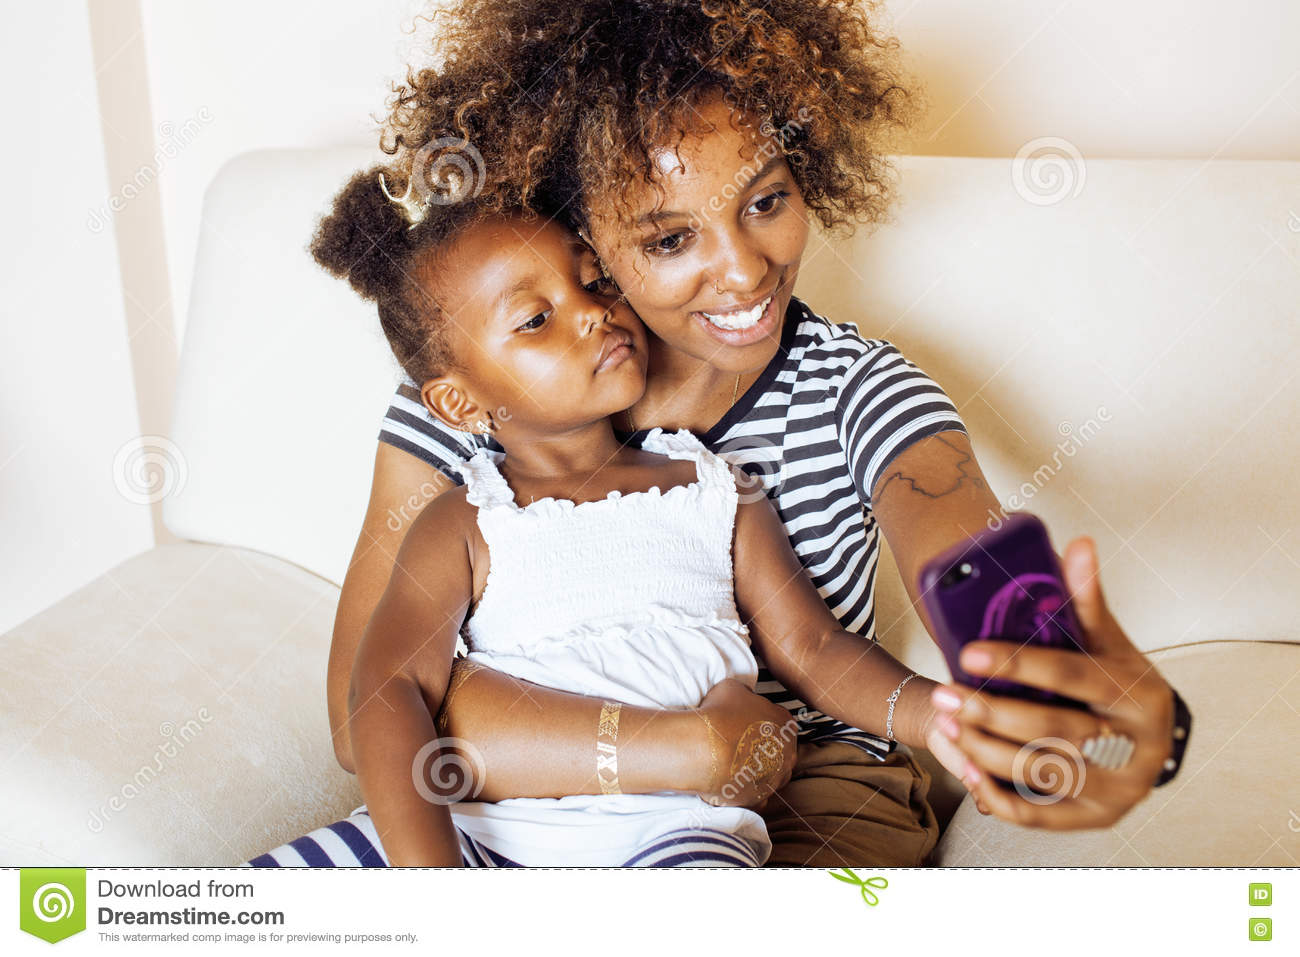 Adorable sweet young afro-american mother with cute little daughter, hanging at home, having fun playing smiling